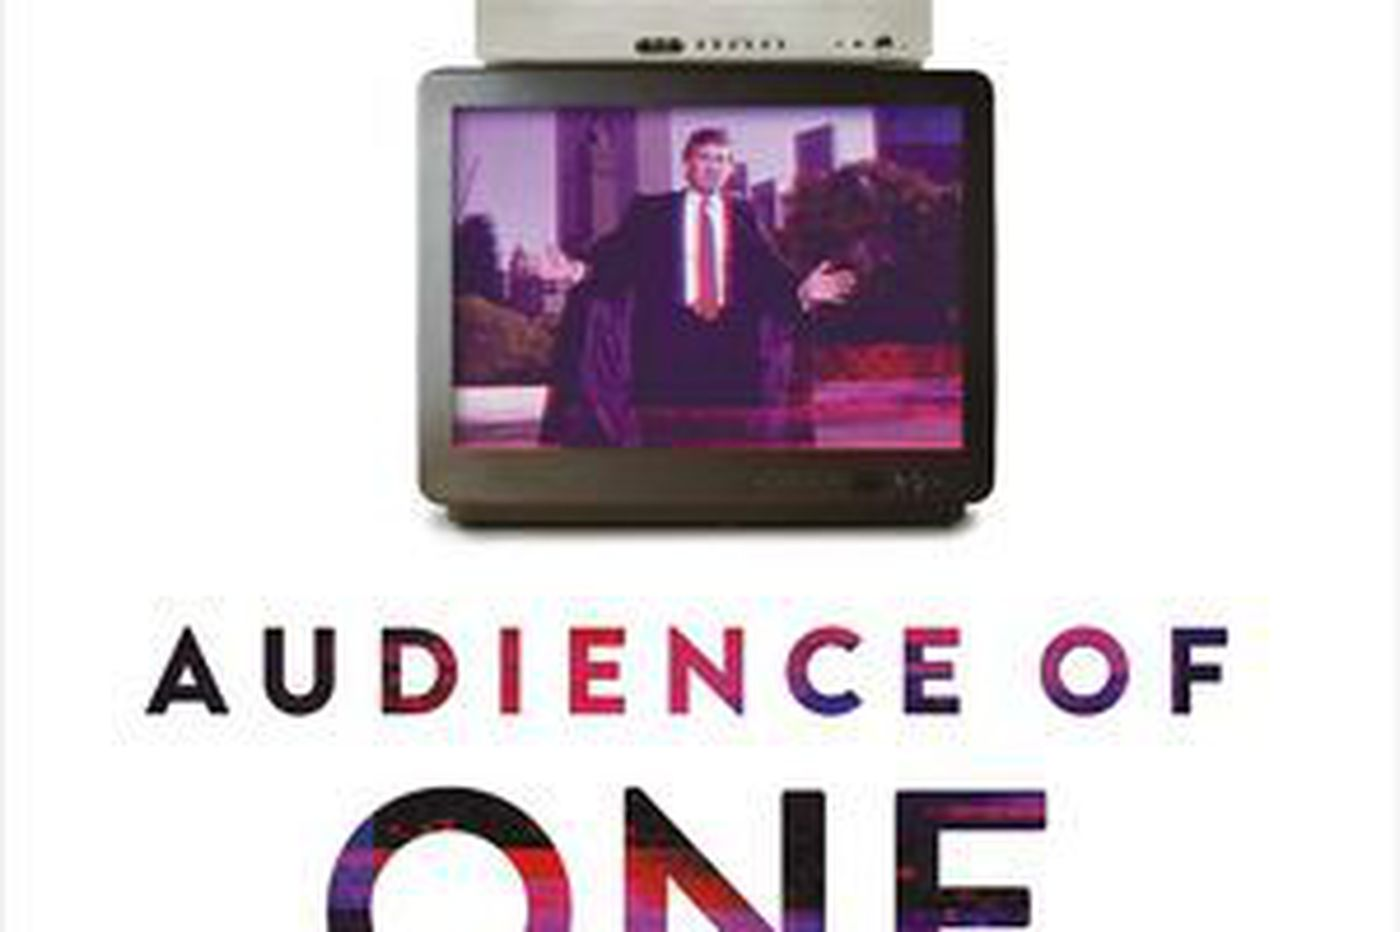 Trump watches TV. Trump stars on TV. Trump is TV. | Book review